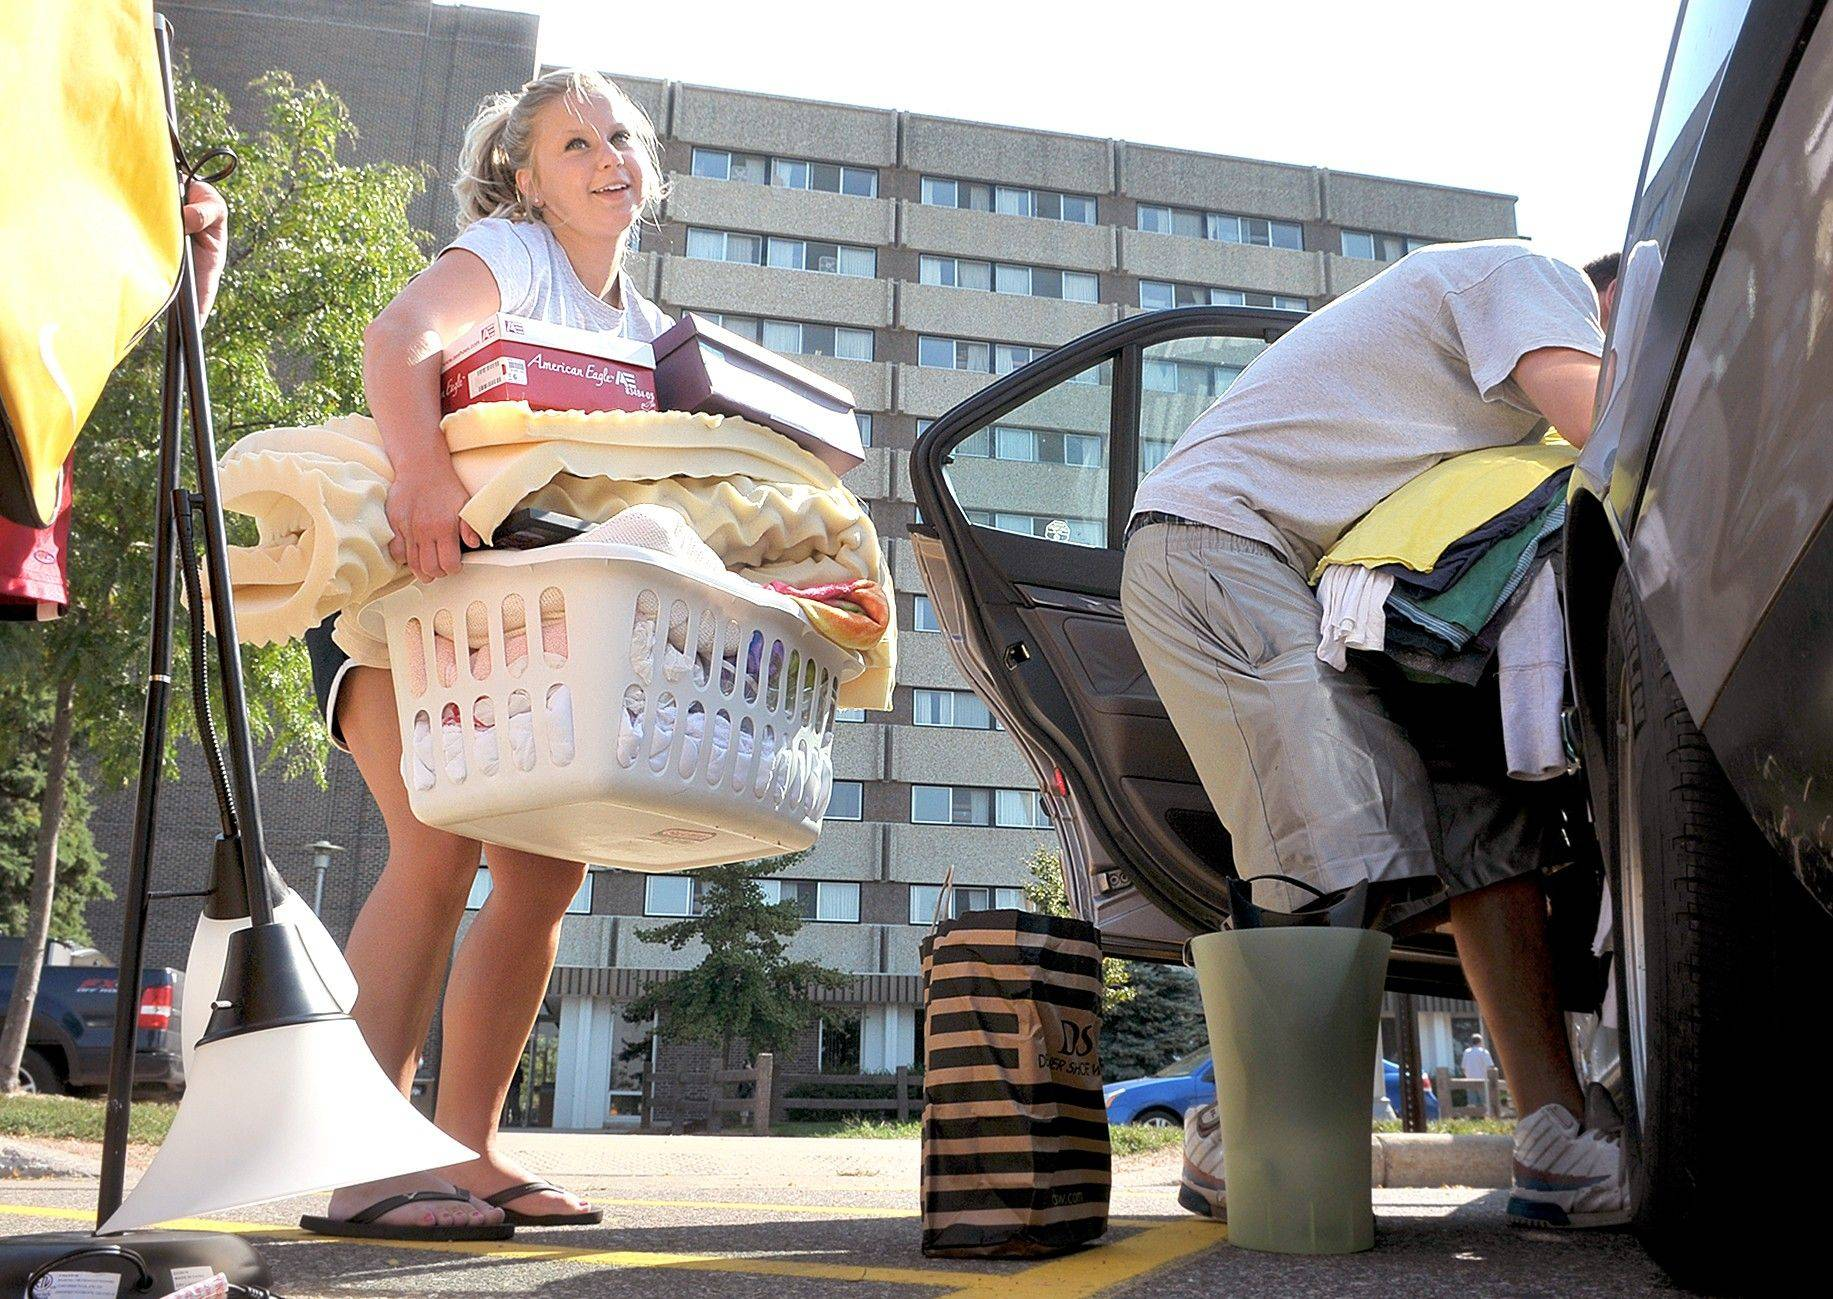 University of Wisconsin-Eau Claire students, Amber Brukardt, left, 19, and Mike Huberty, 18, move in to their dorms Thursday.